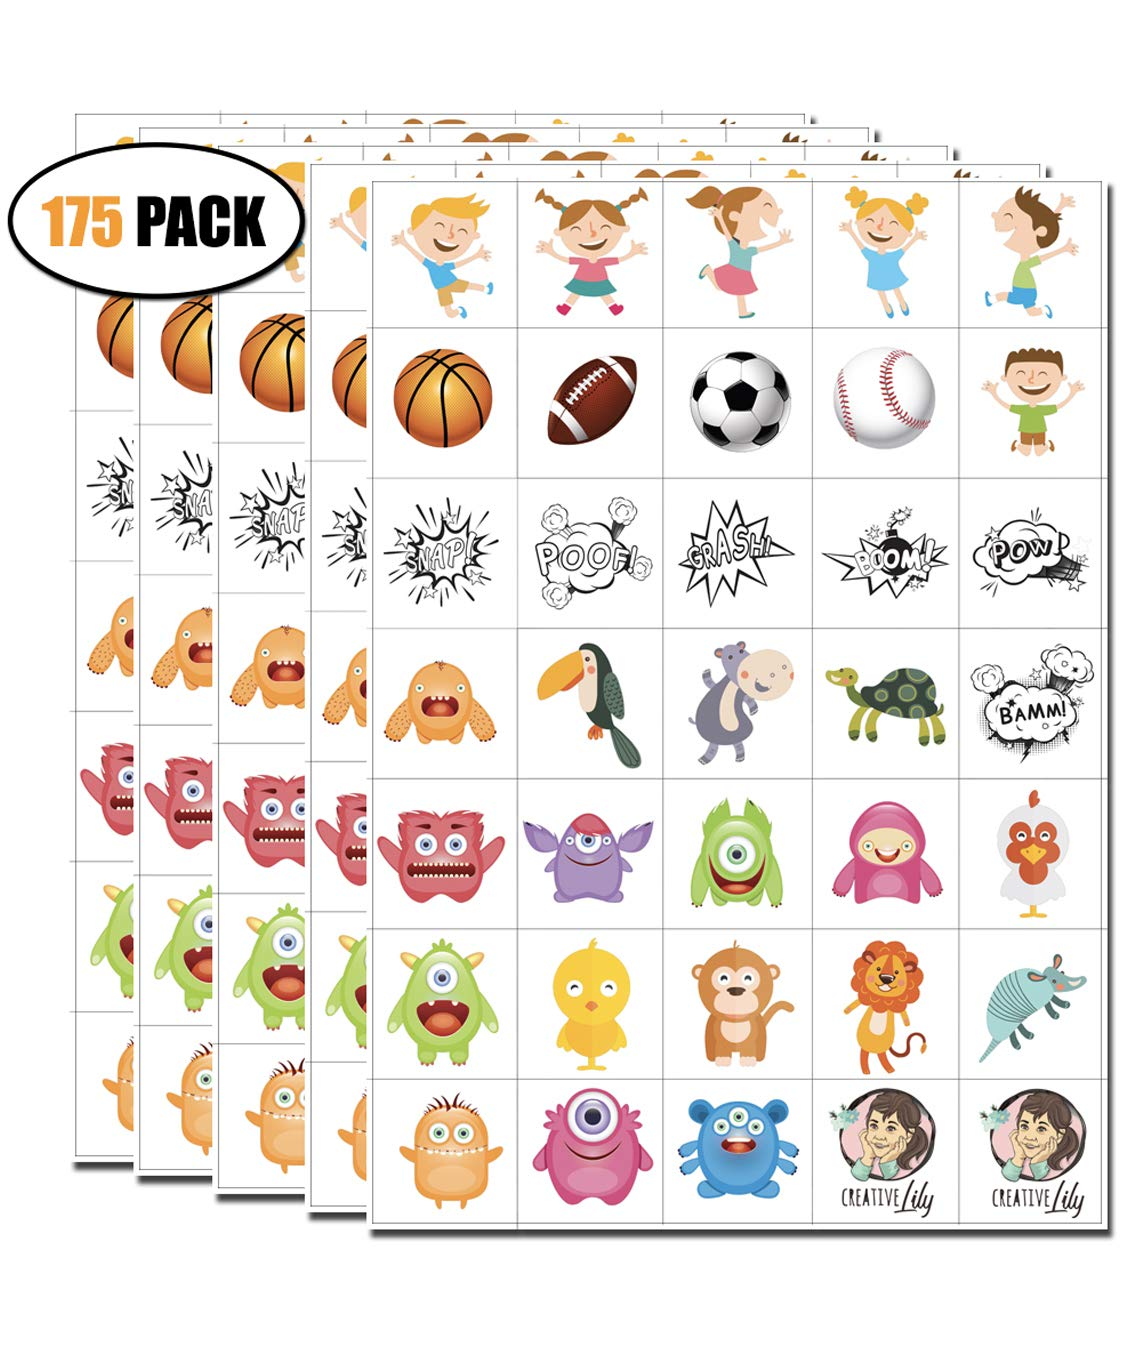 Temporary Tattoos for Kids – 175 Count on 5 Sheets – 35 Assorted Artworks per Sheet – Kids Friendly Tattoos for Party Favors Birthday Supplies Stocking Stuffers Goodie Bags for Boys & Girls